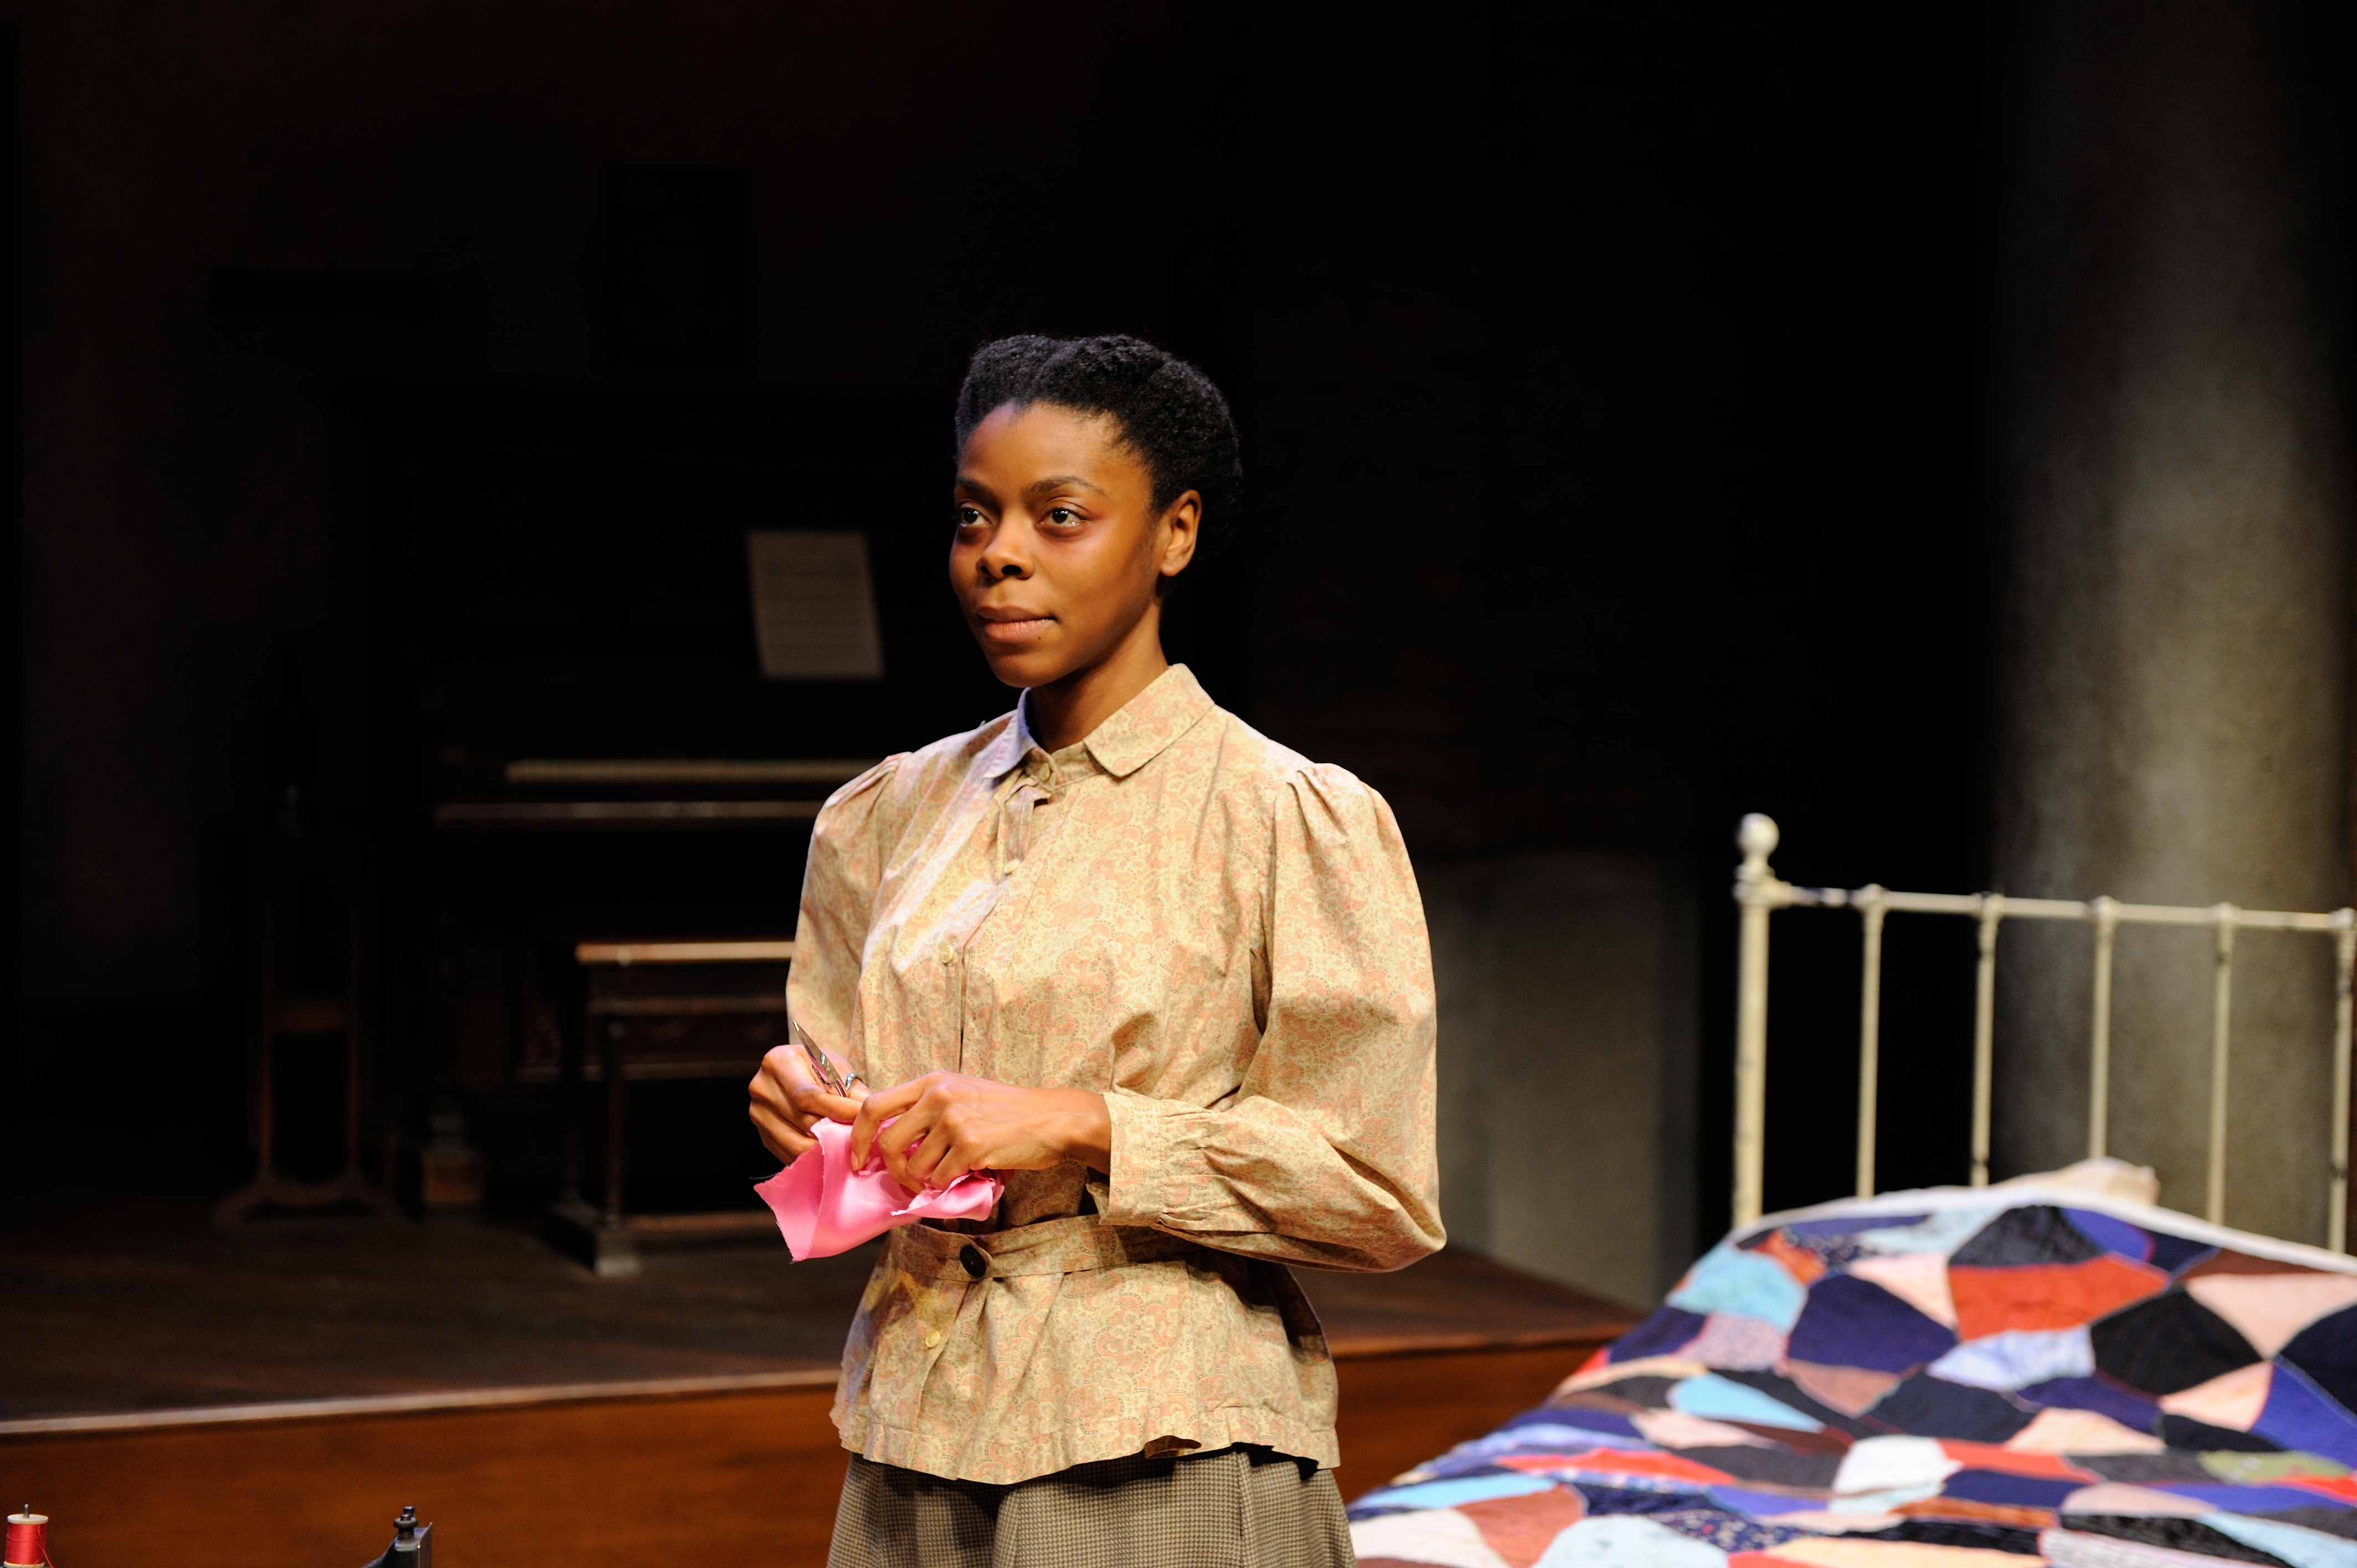 BWW Reviews: Riveting INTIMATE APPAREL Takes Center Stage ...